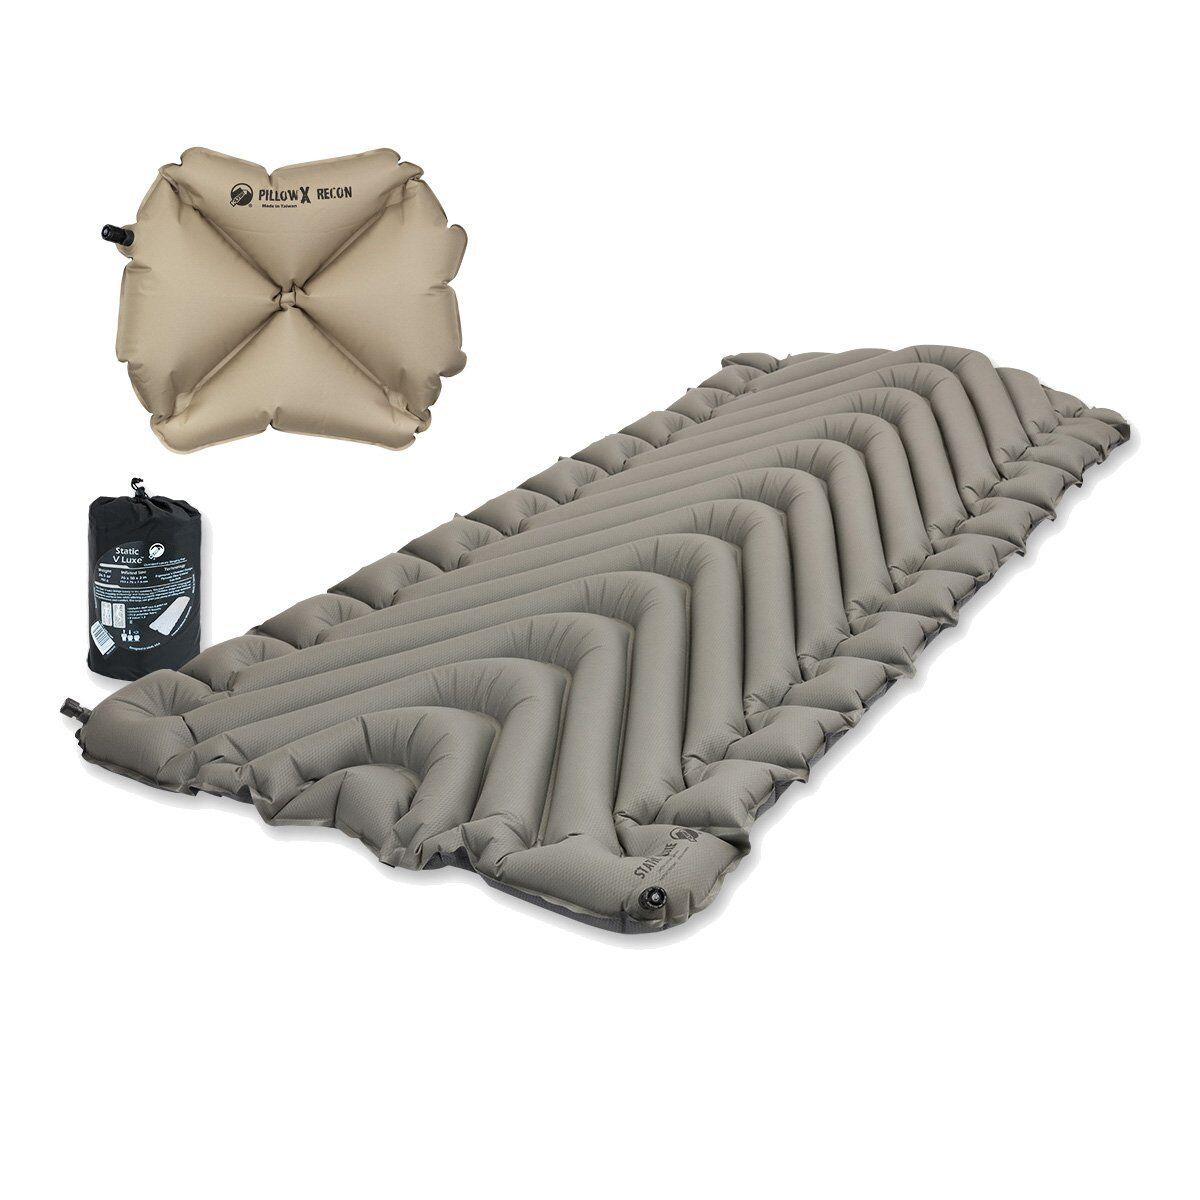 Klymit Static V Luxe Sleeping Pad X-Large Gray w/ Pillow X R